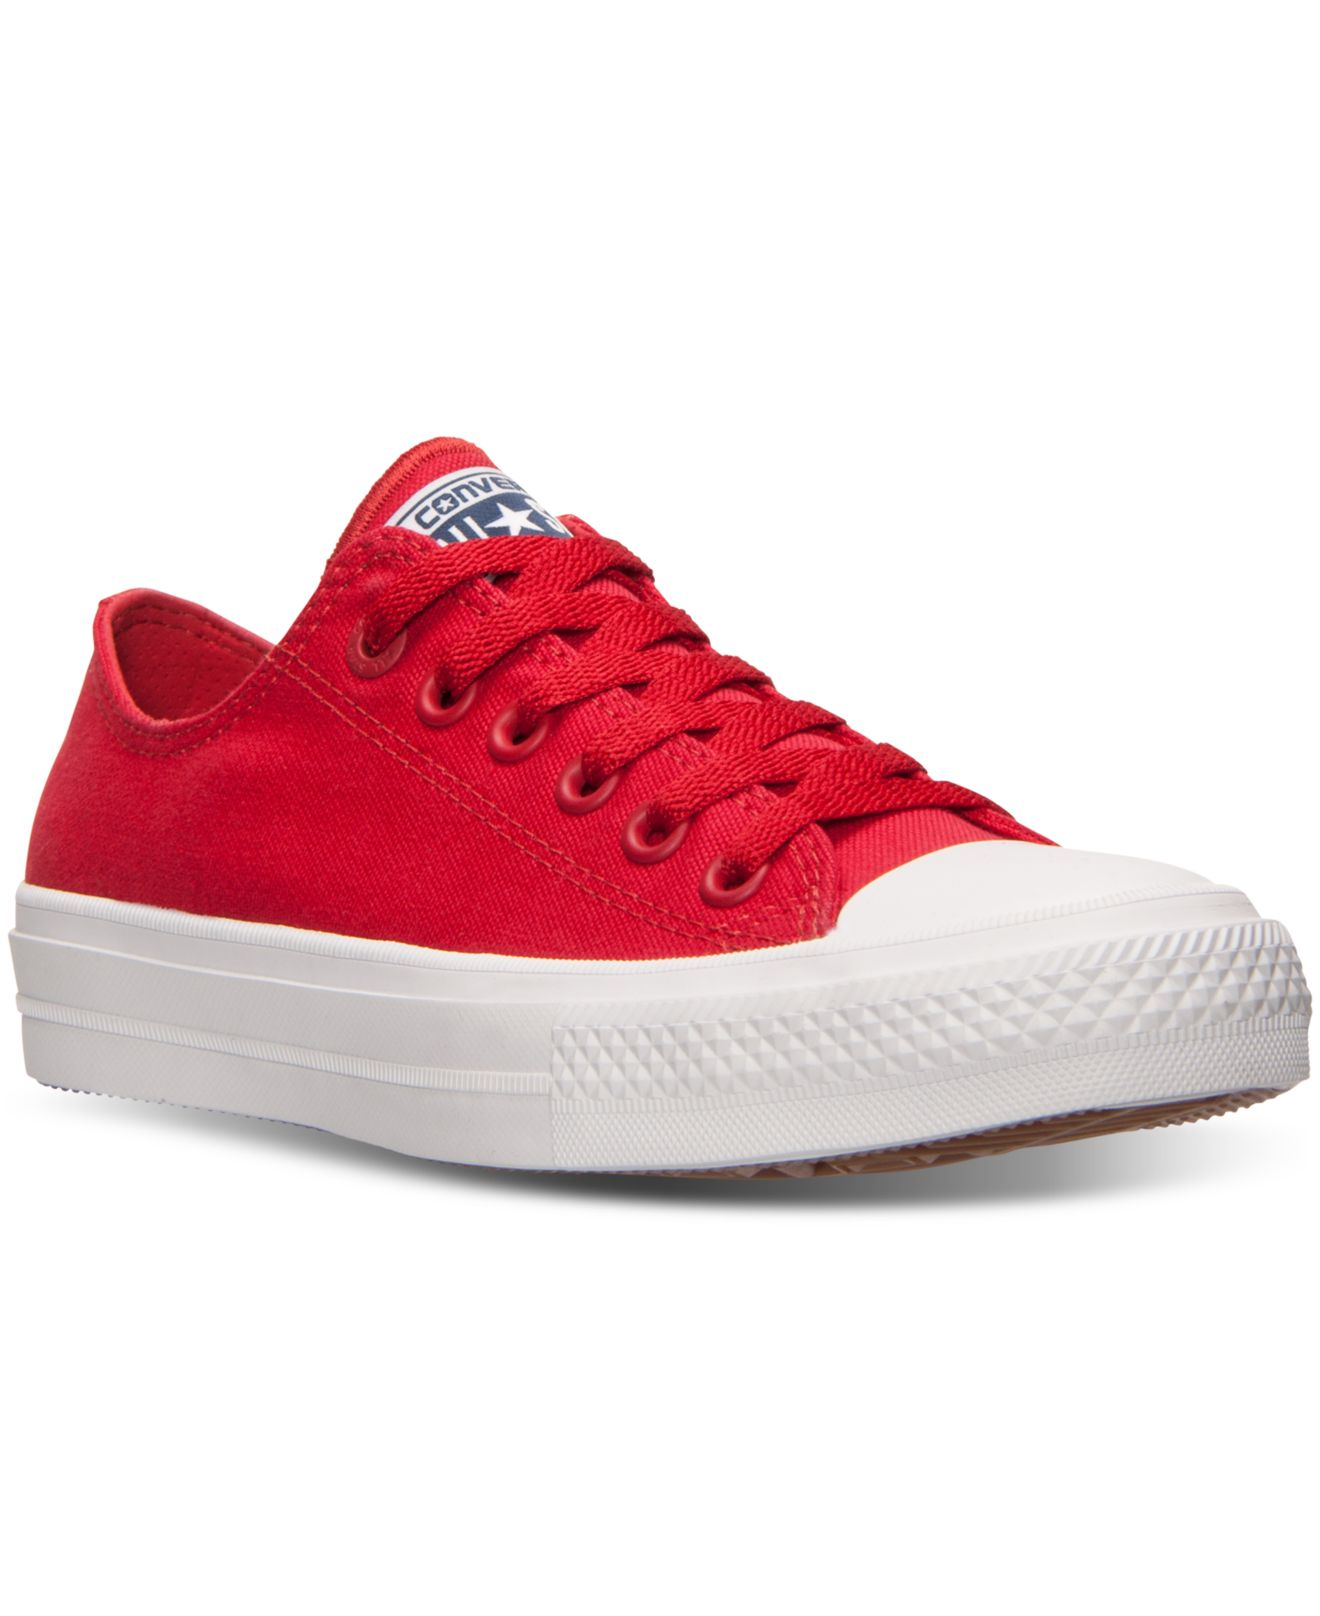 75429ad925b4e3 Lyst - Converse Women s Chuck Taylor All Star Ii Ox Casual Sneakers ...